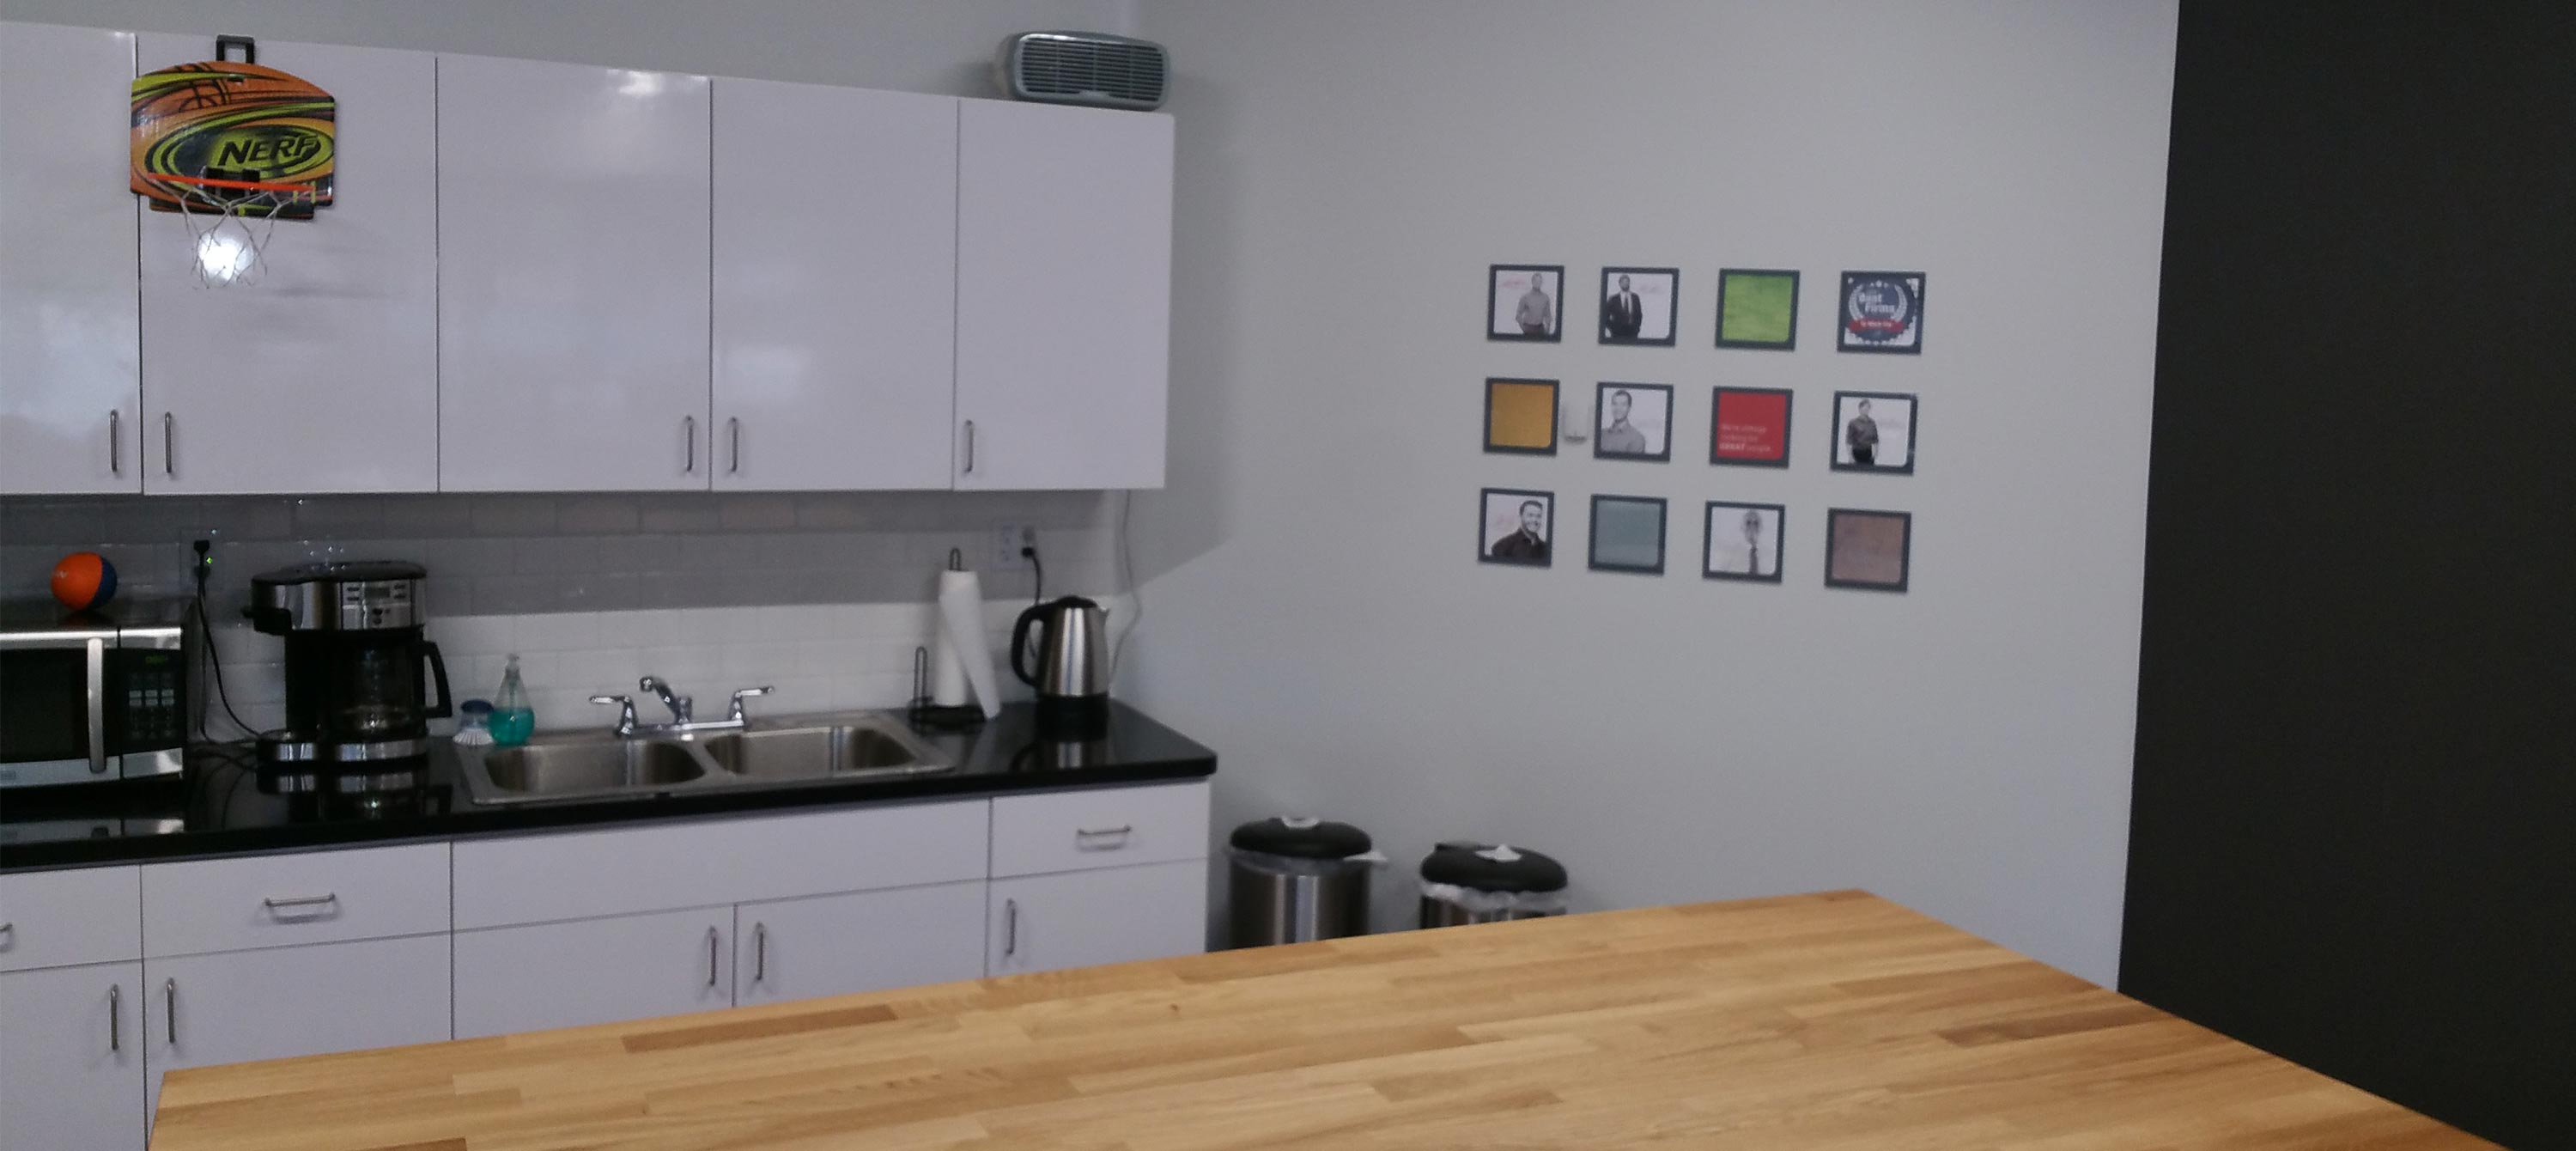 View of the finished kitchen area and people wall in the Schaefer Phoenix office.